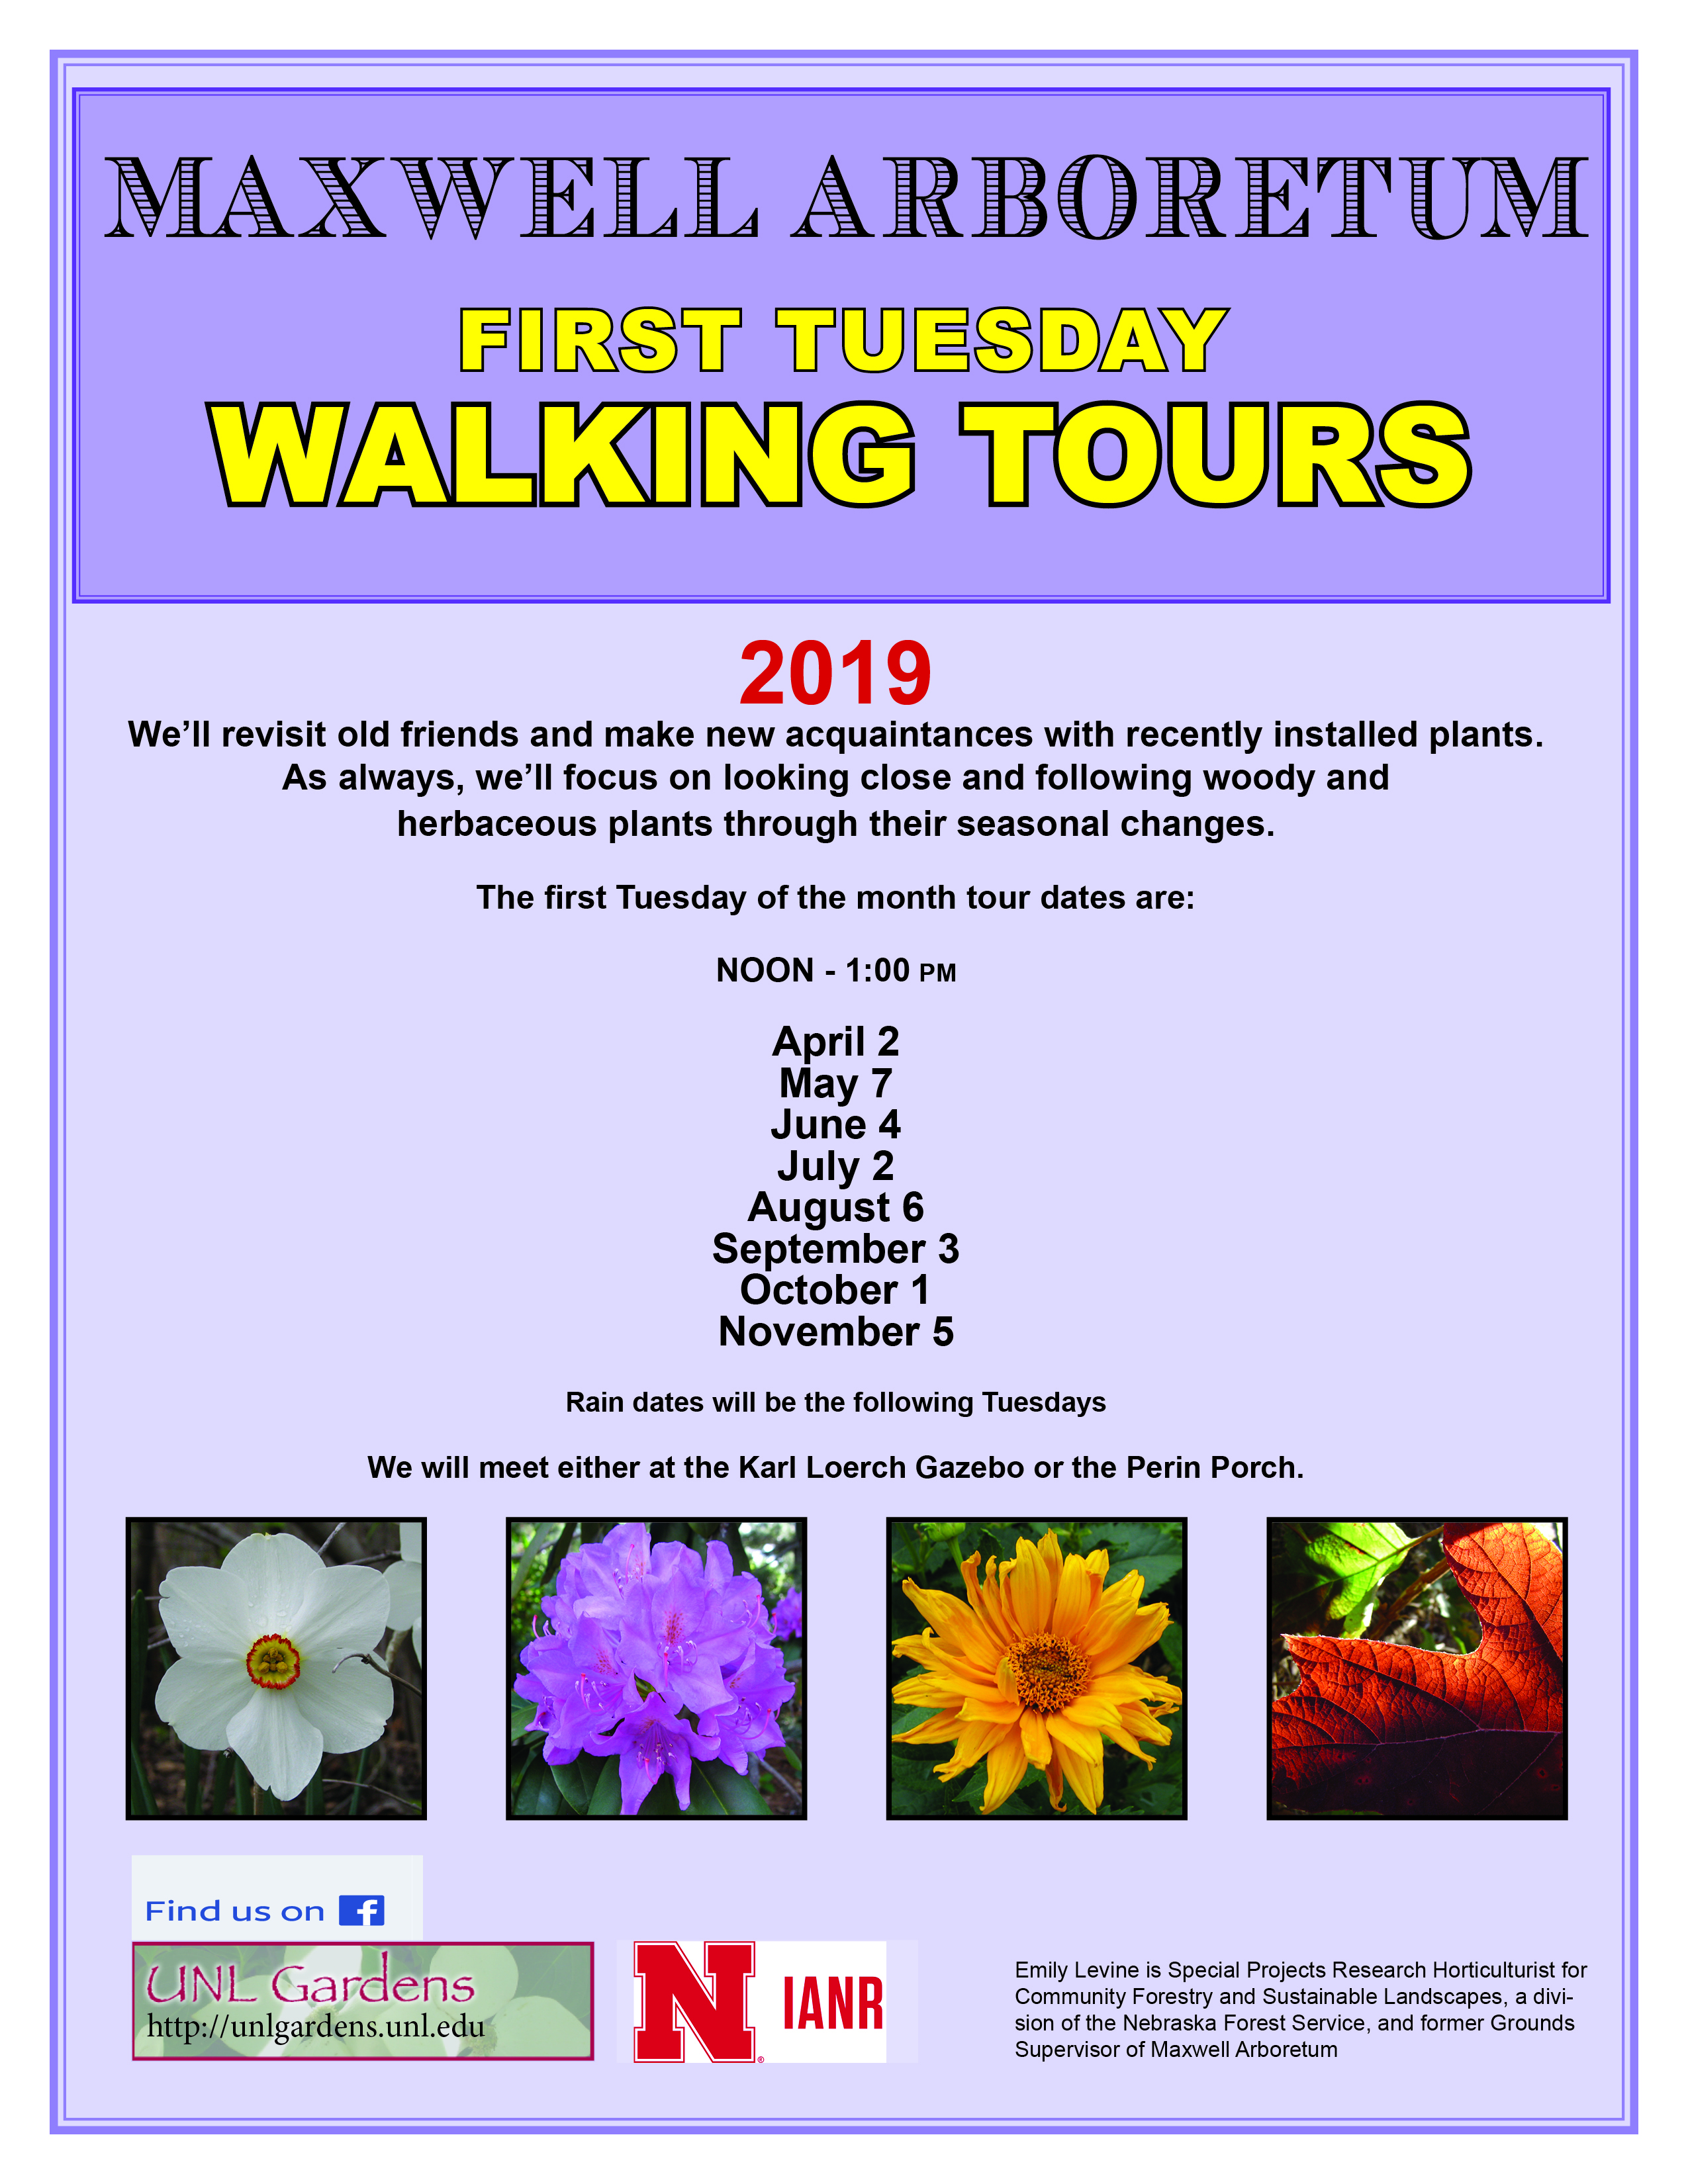 Earl G. Maxwell Arboretum First Tuesday Walking Tours